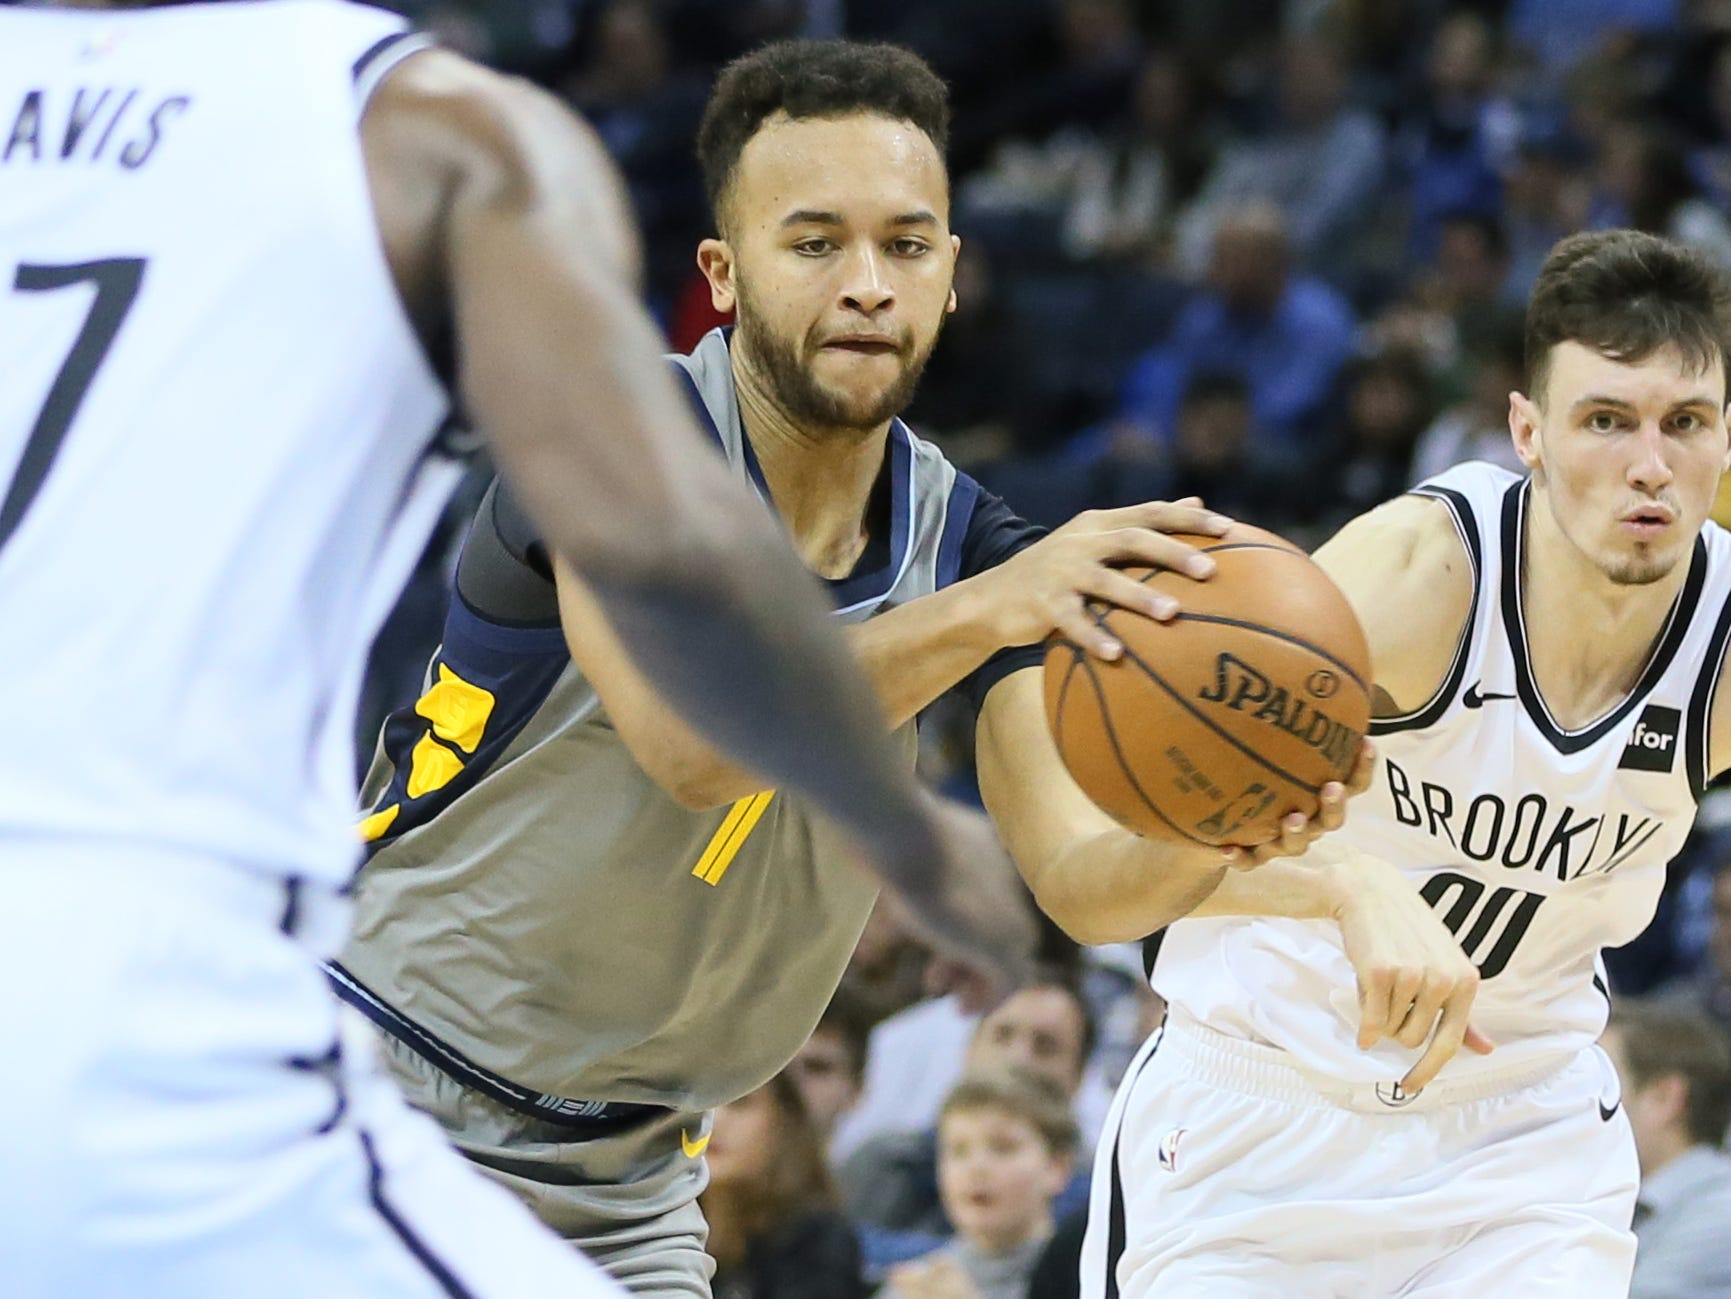 44. Kyle Anderson, Grizzlies (Jan. 4): 11 points, 11 assists, 10 rebounds in 109-100 loss to Nets.